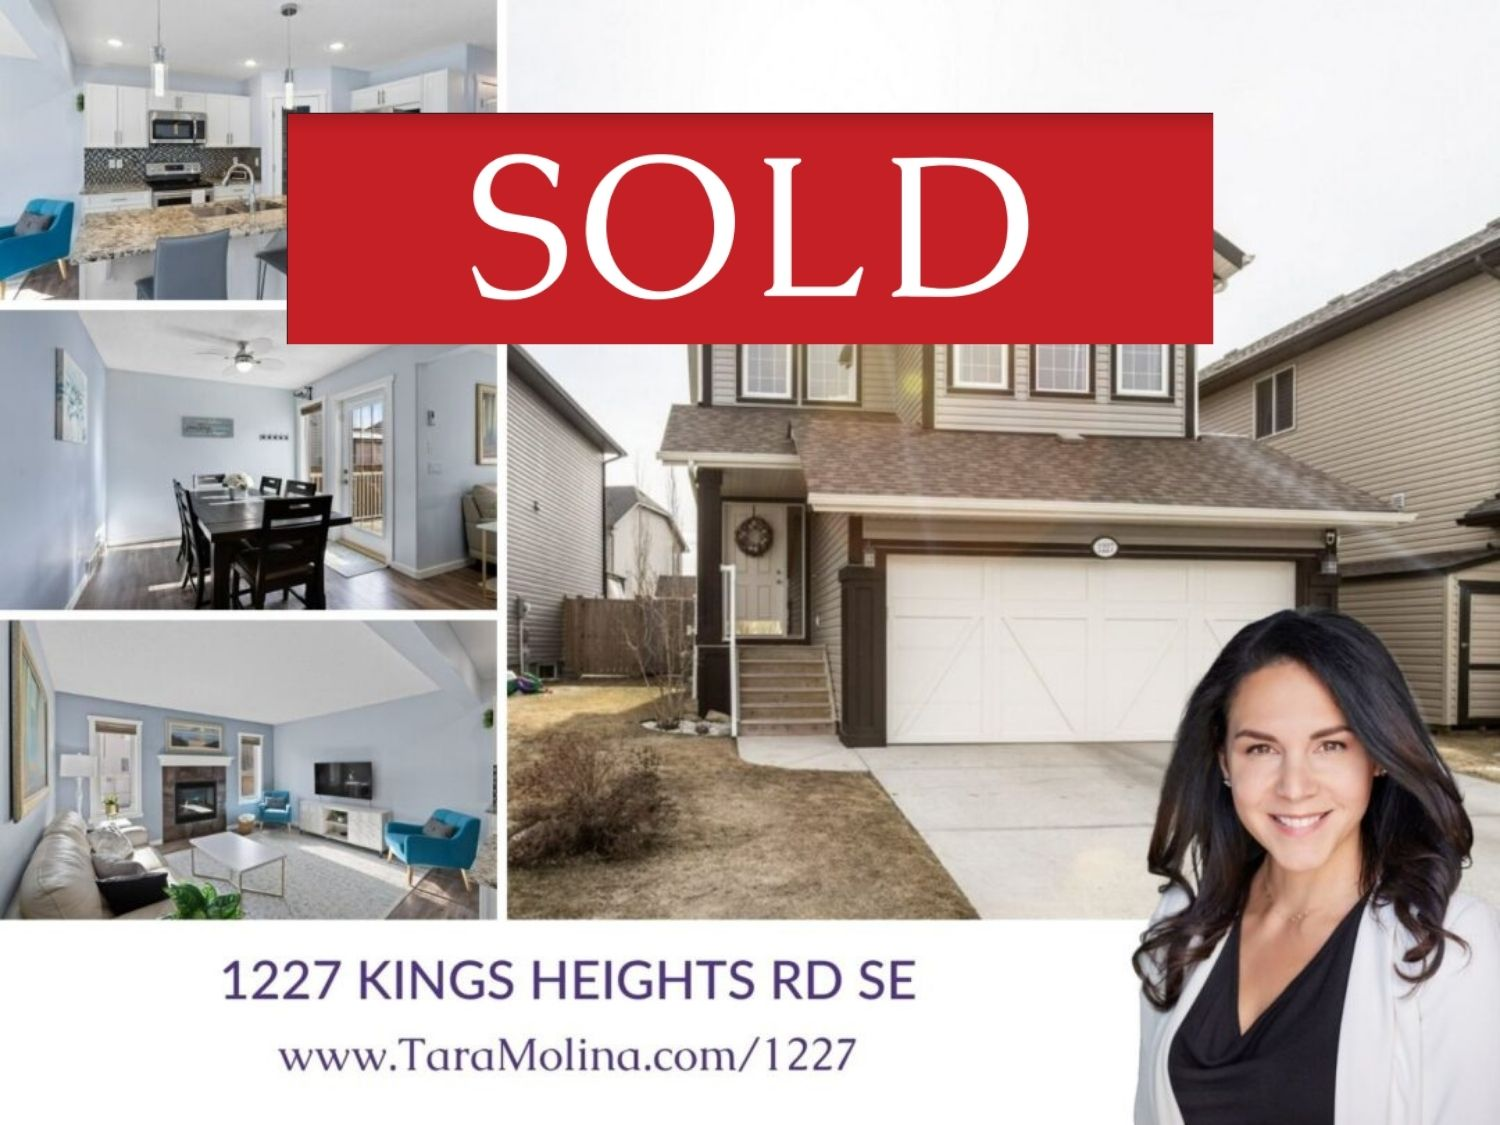 Sold in Airdrie by Tara Molina